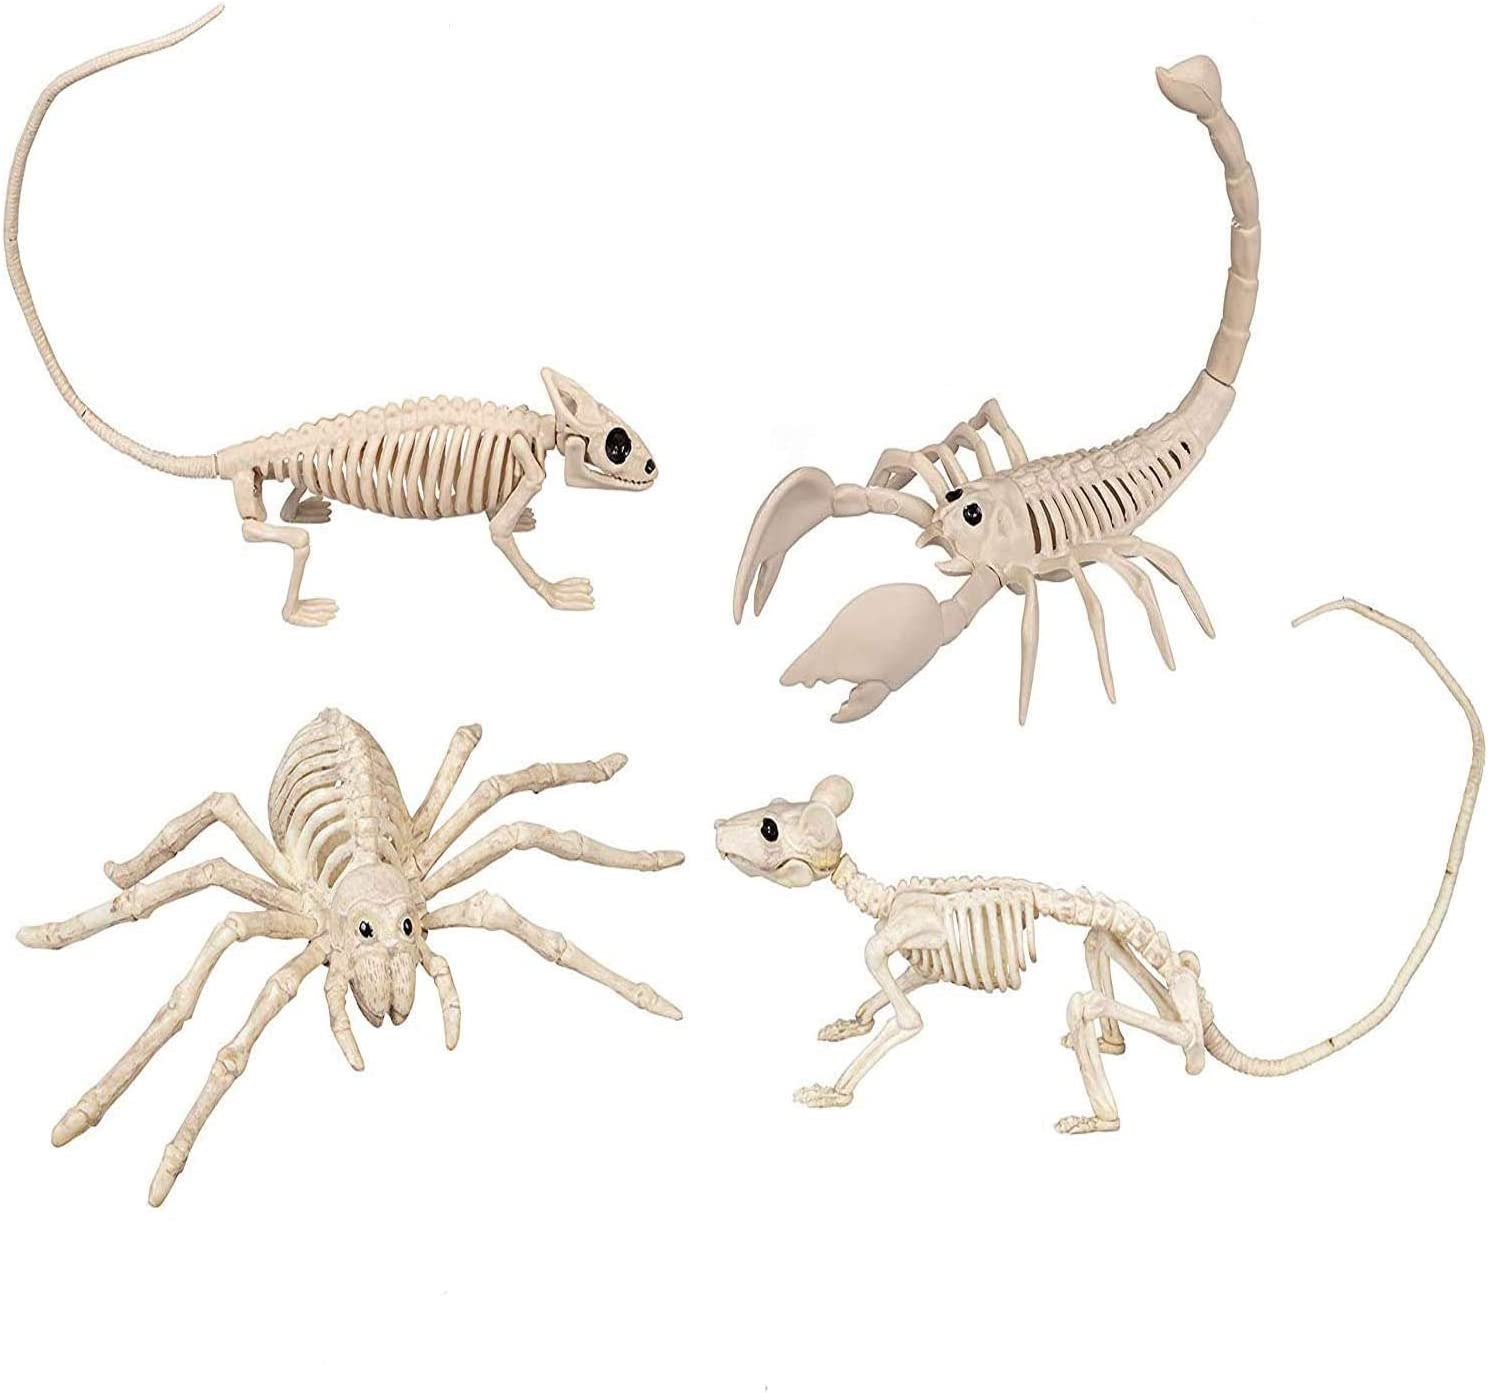 Skeleton Animal Halloween Party Decoration | Plastic Decor Costume Party | Fake Animal Set Including Rat, Spider, Lizard, Scorpion Skeletons | Prop Anatomy Lawn Decorations | Indoor Outdoor | 4 Pack